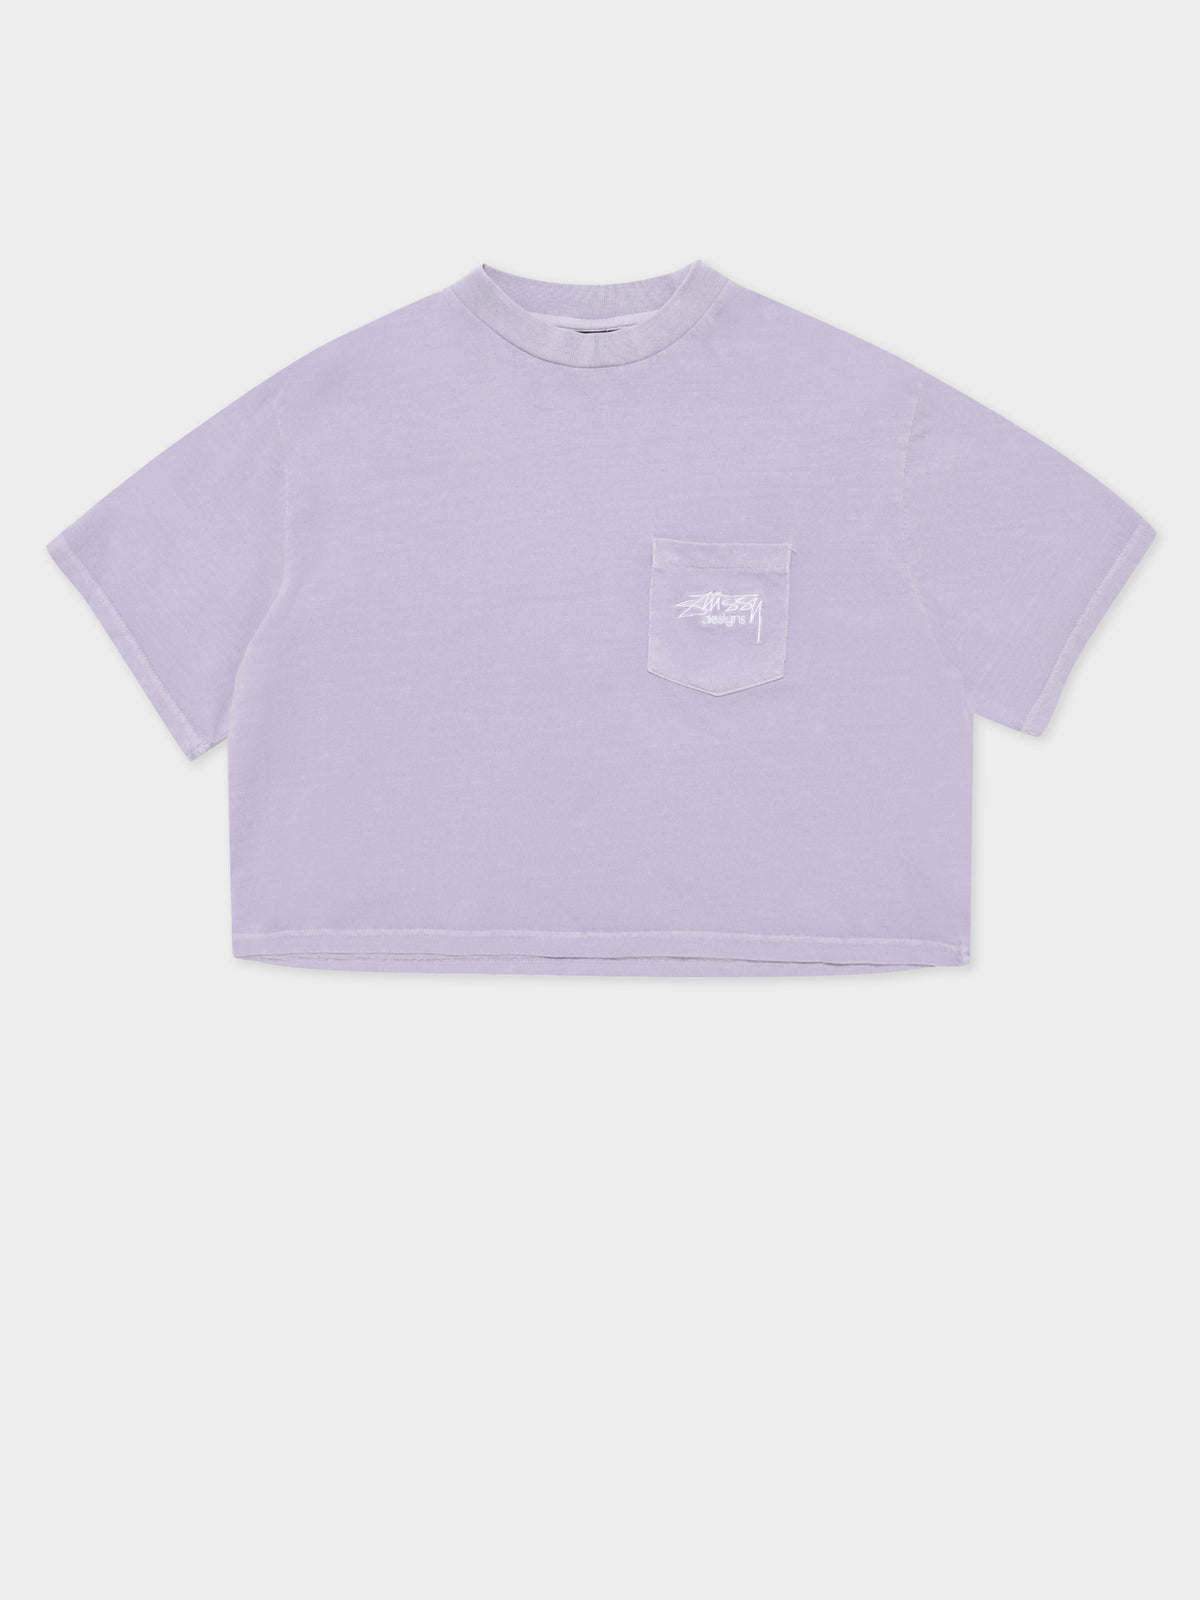 Designs Pocket T-Shirt in Lilac